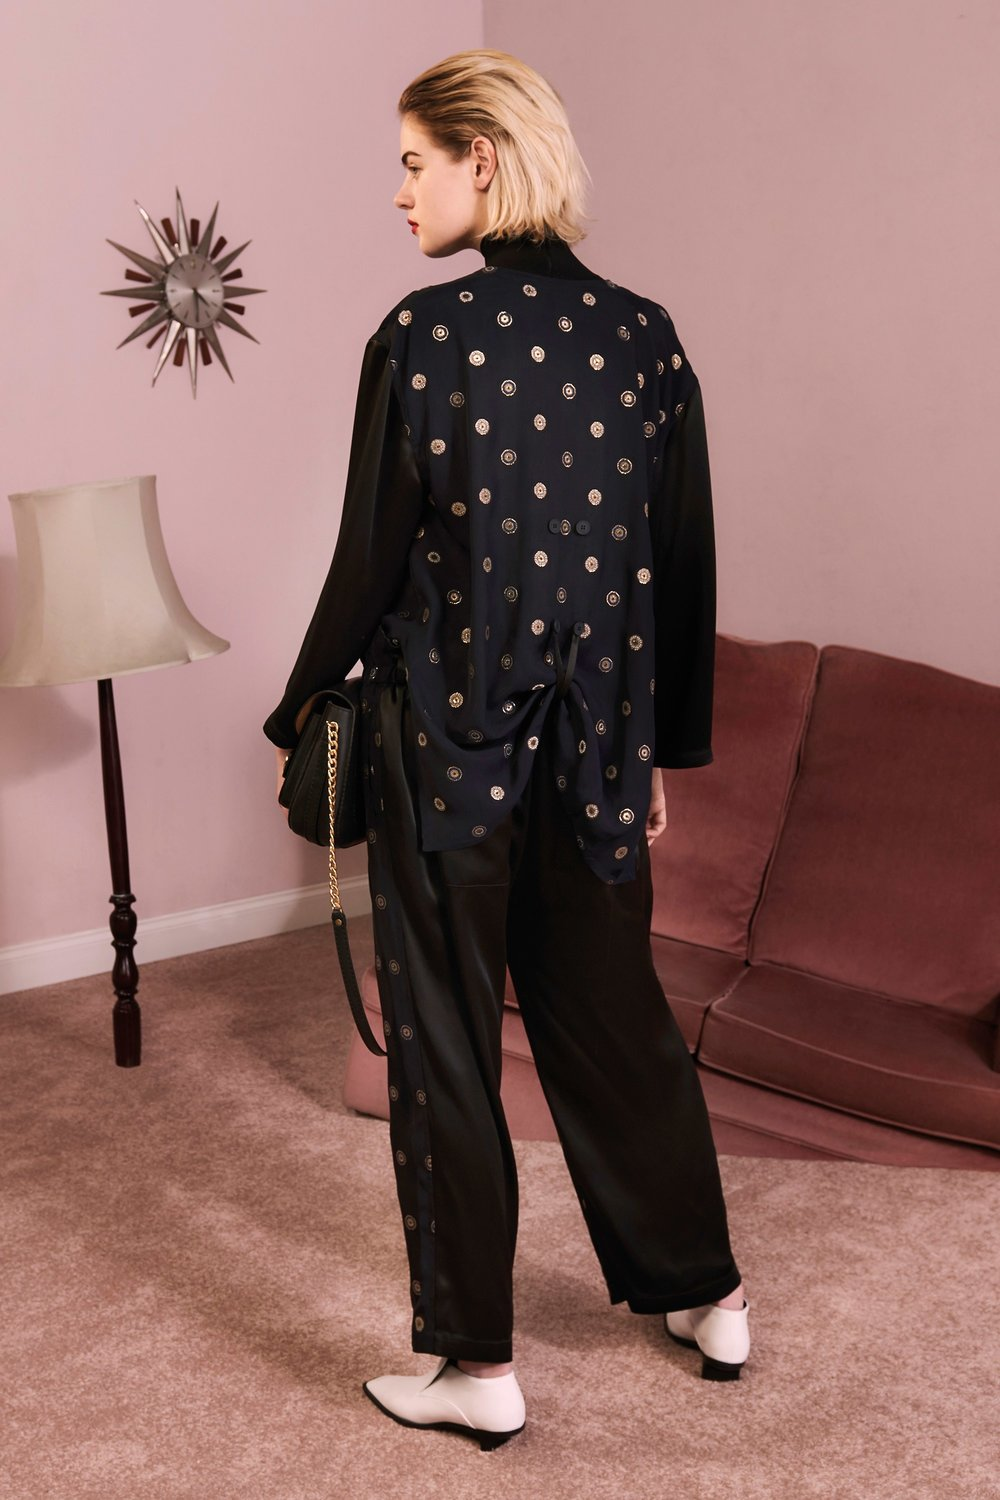 26-stella-mccartney-pre-fall-2017.jpg